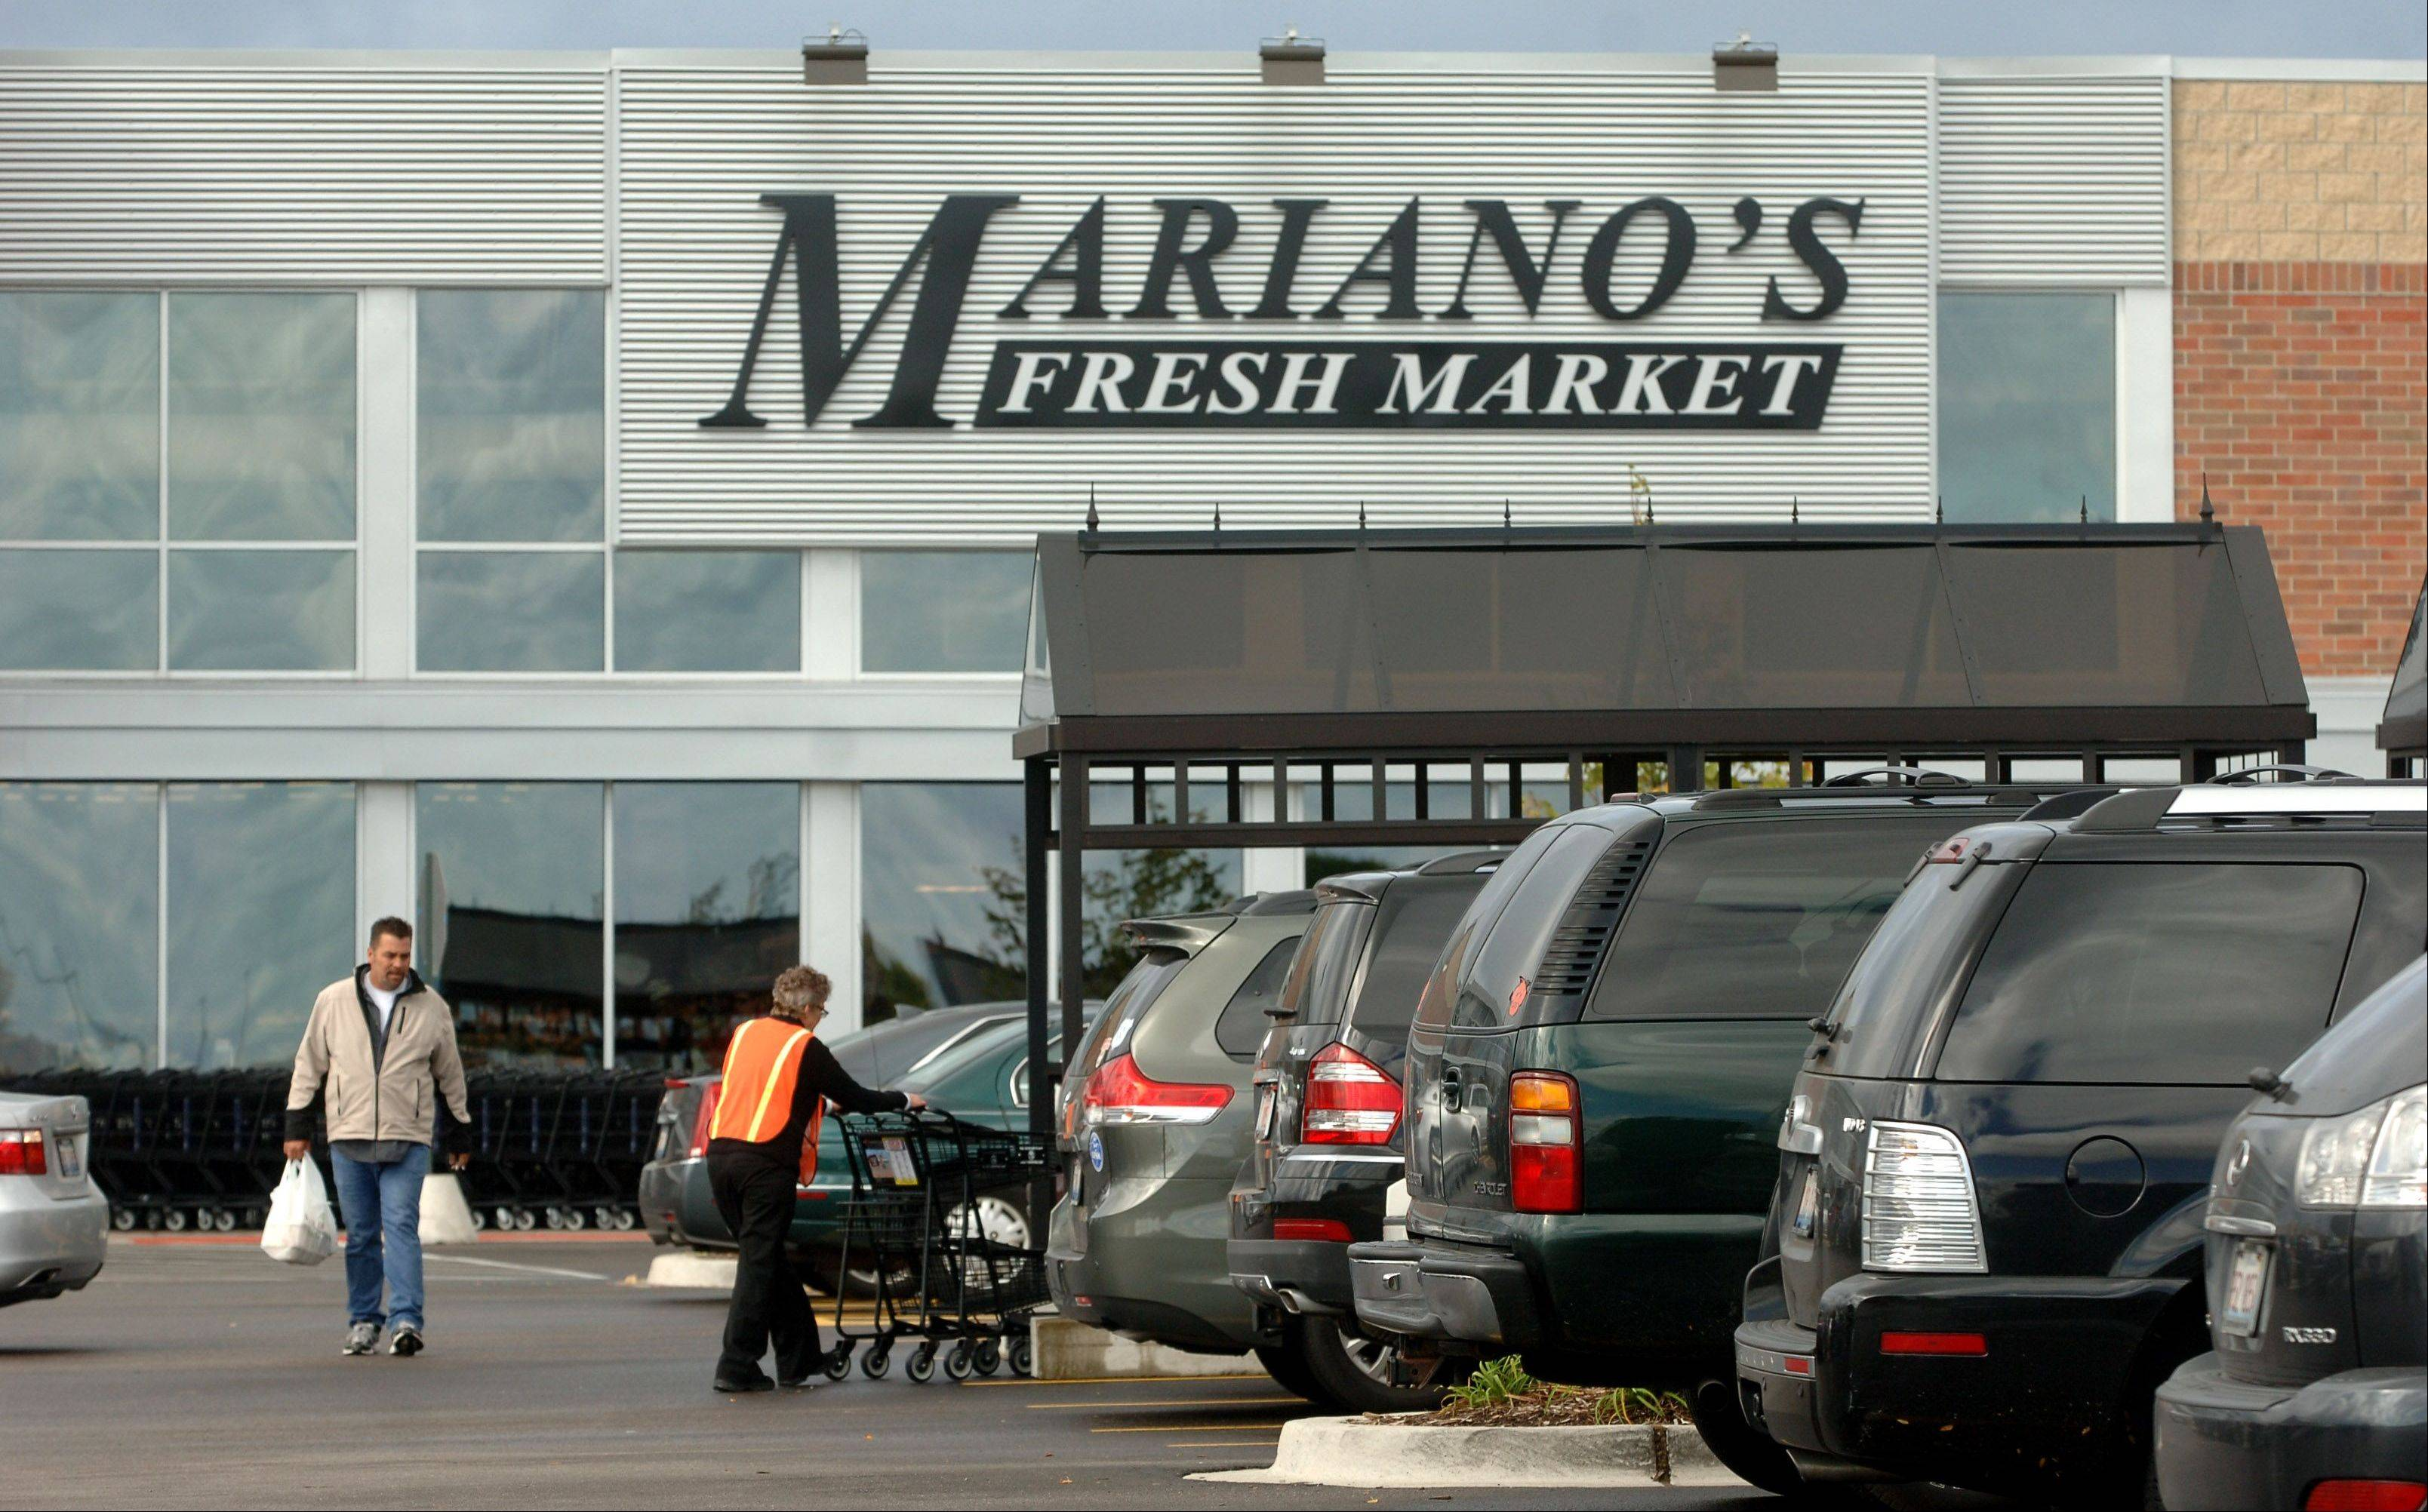 Lake Zurich approves changes in Mariano's Fresh Market plan